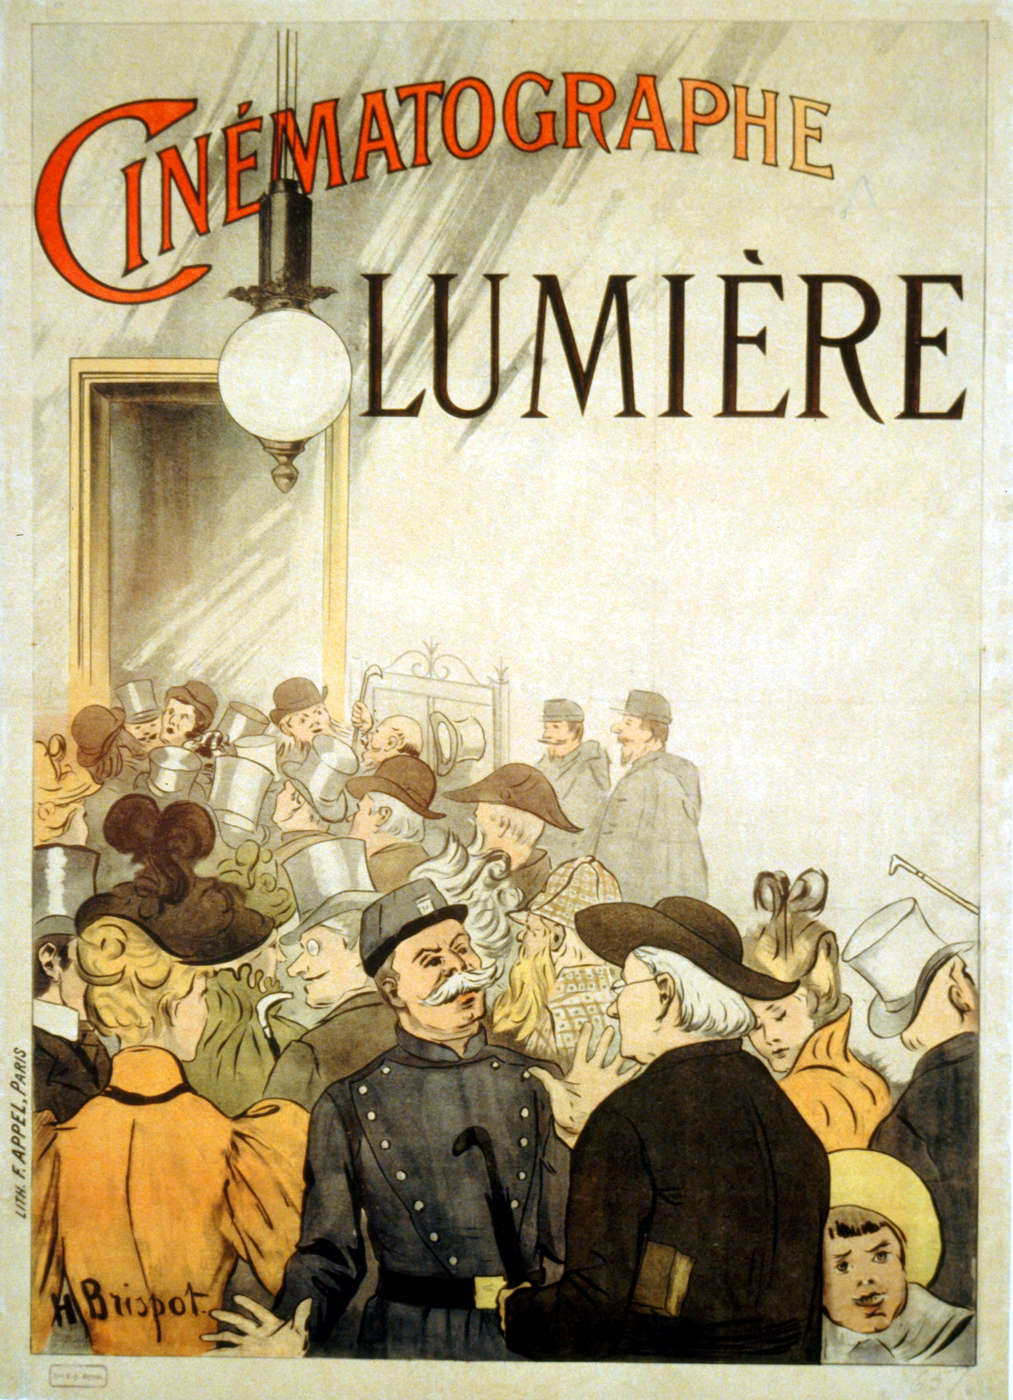 cinematograph_lumiere_advertisement_1895